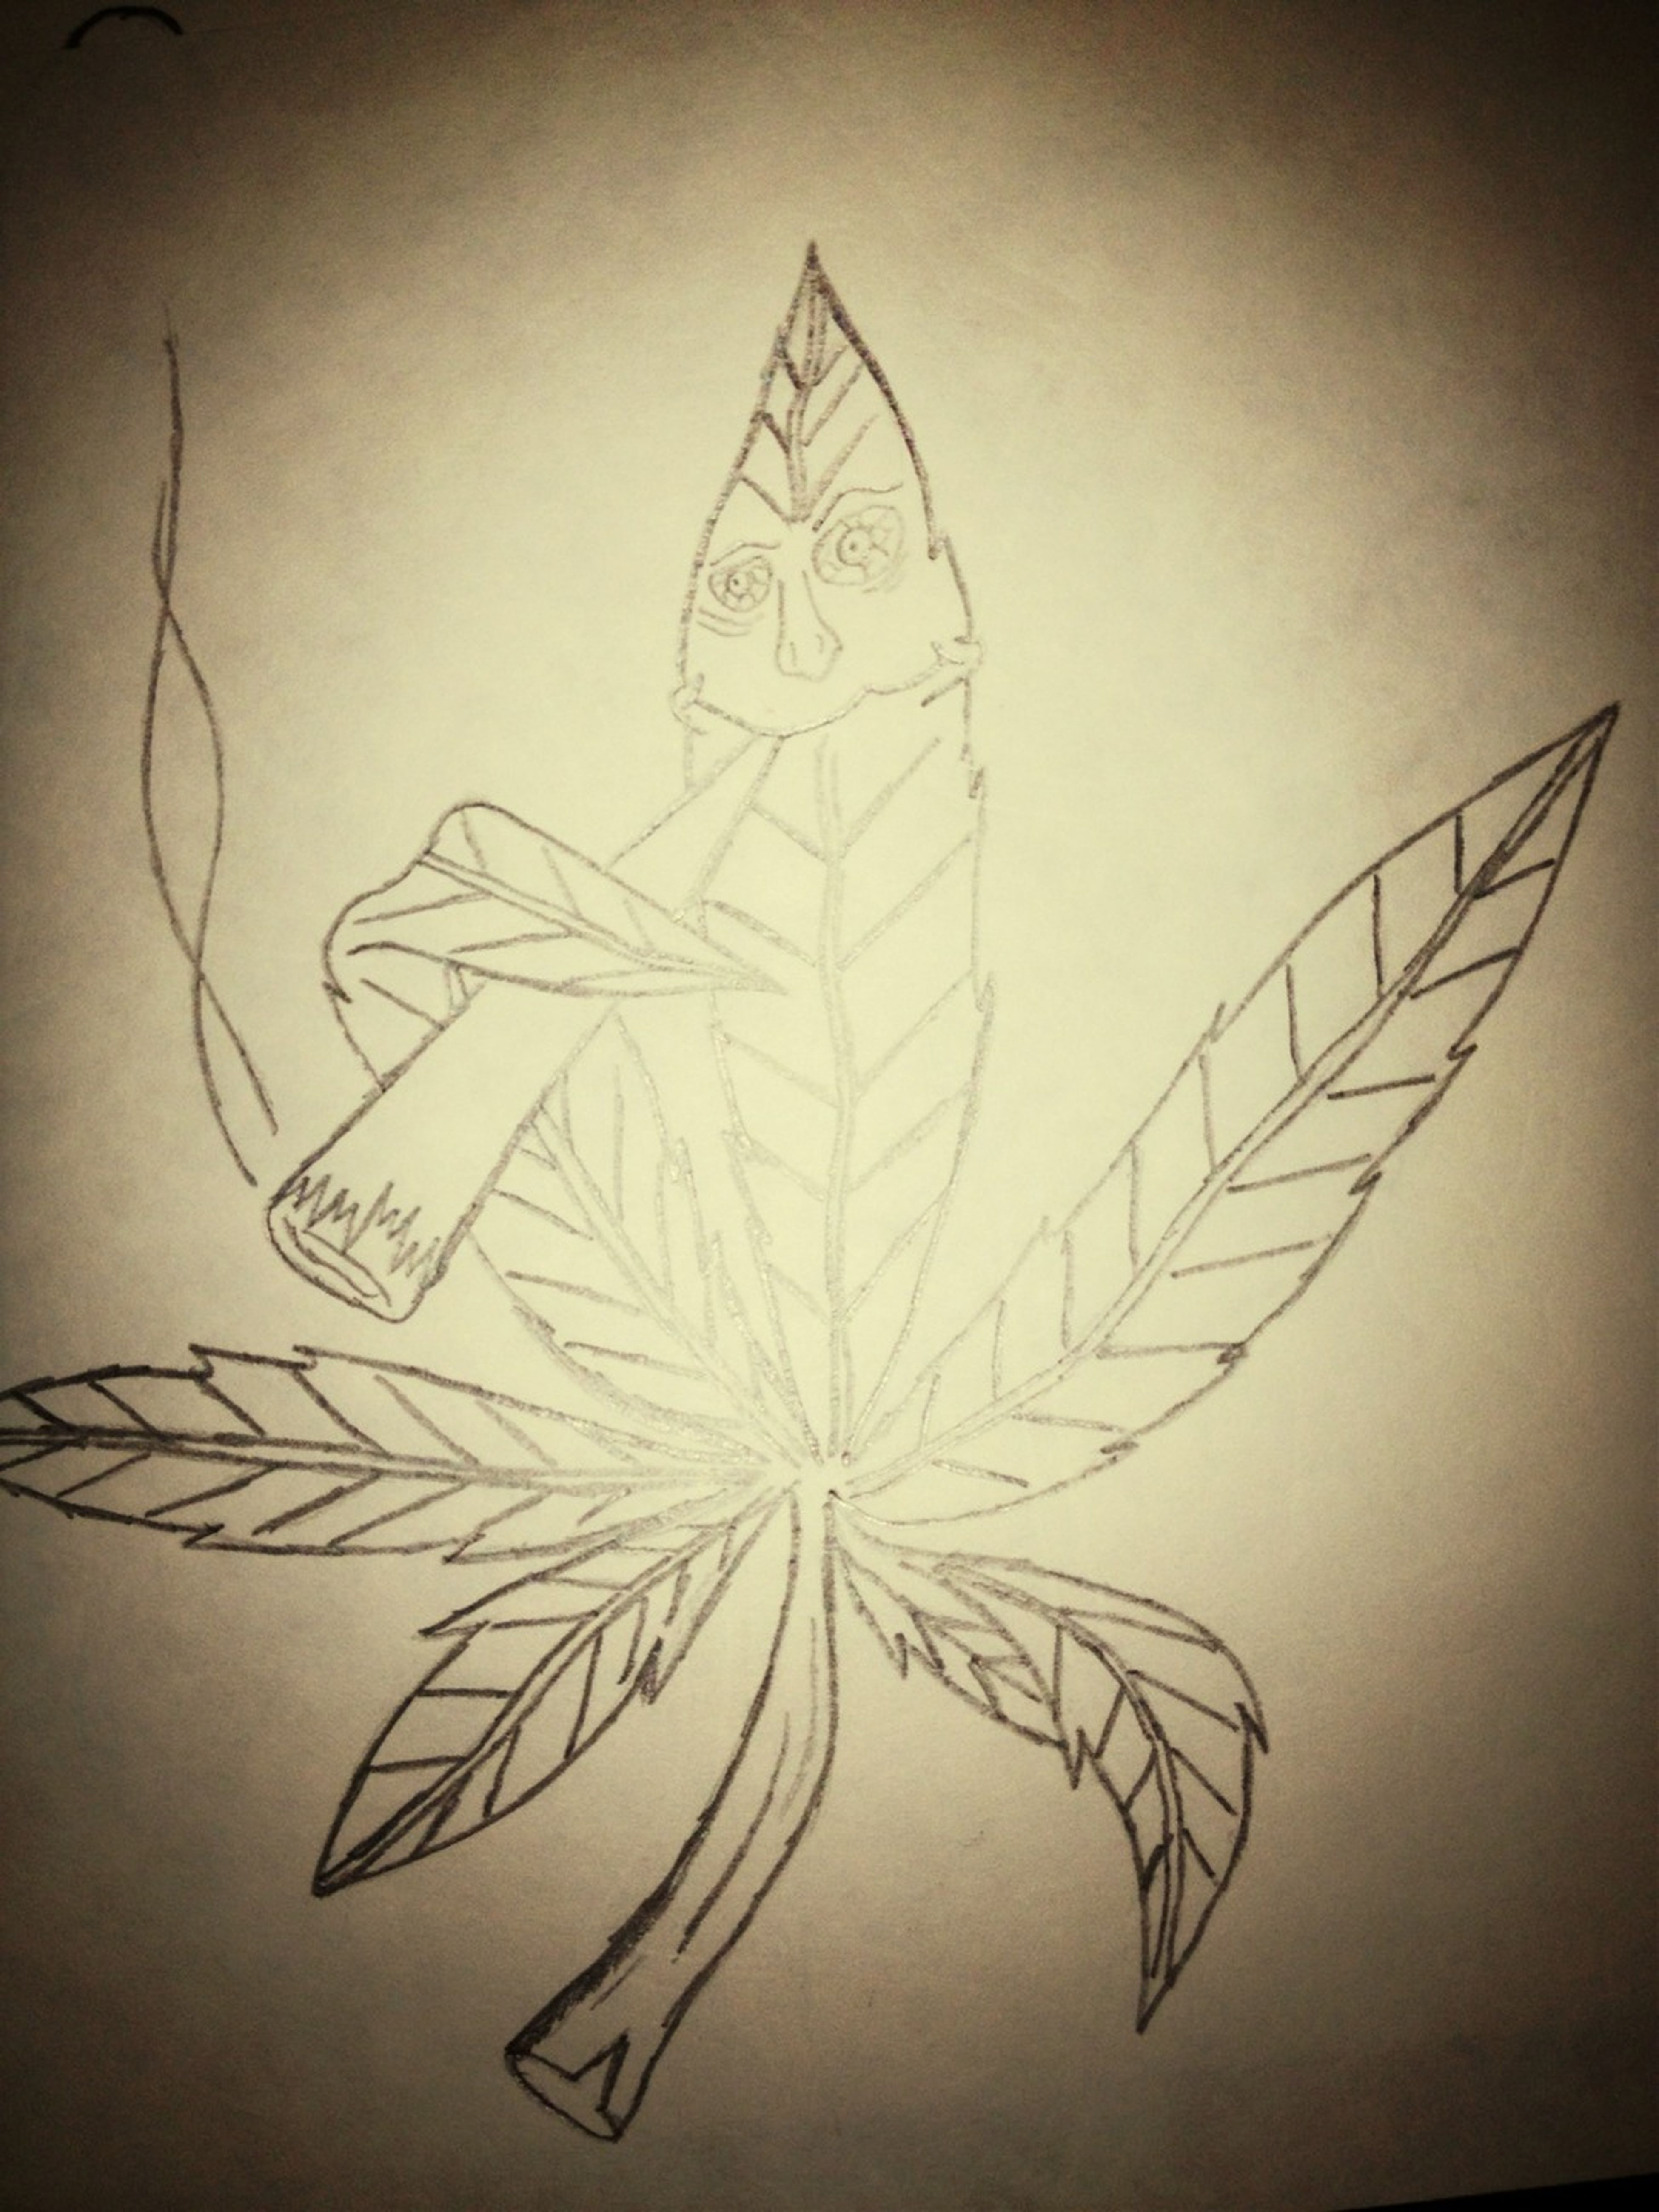 Im Not A Smoker But I Thought Drawing This Would Be Cute And Funny